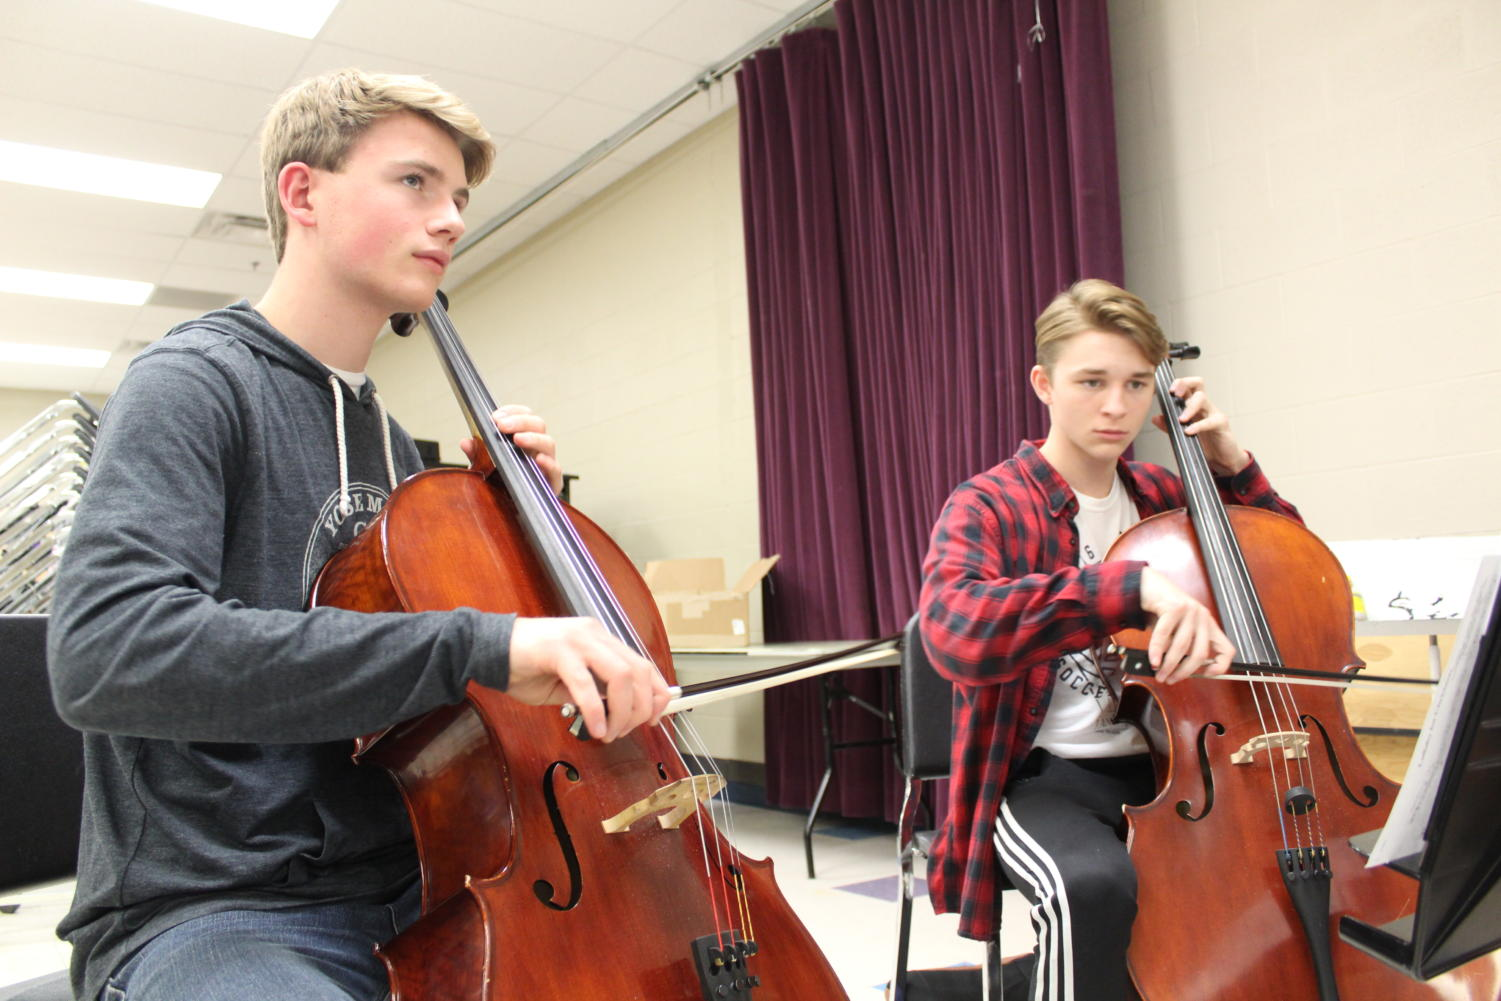 Junior William Laycock and senior Jack Fulkerson play their cellos during a symphonic orchestra rehearsal. Photo by Chrystian Noble